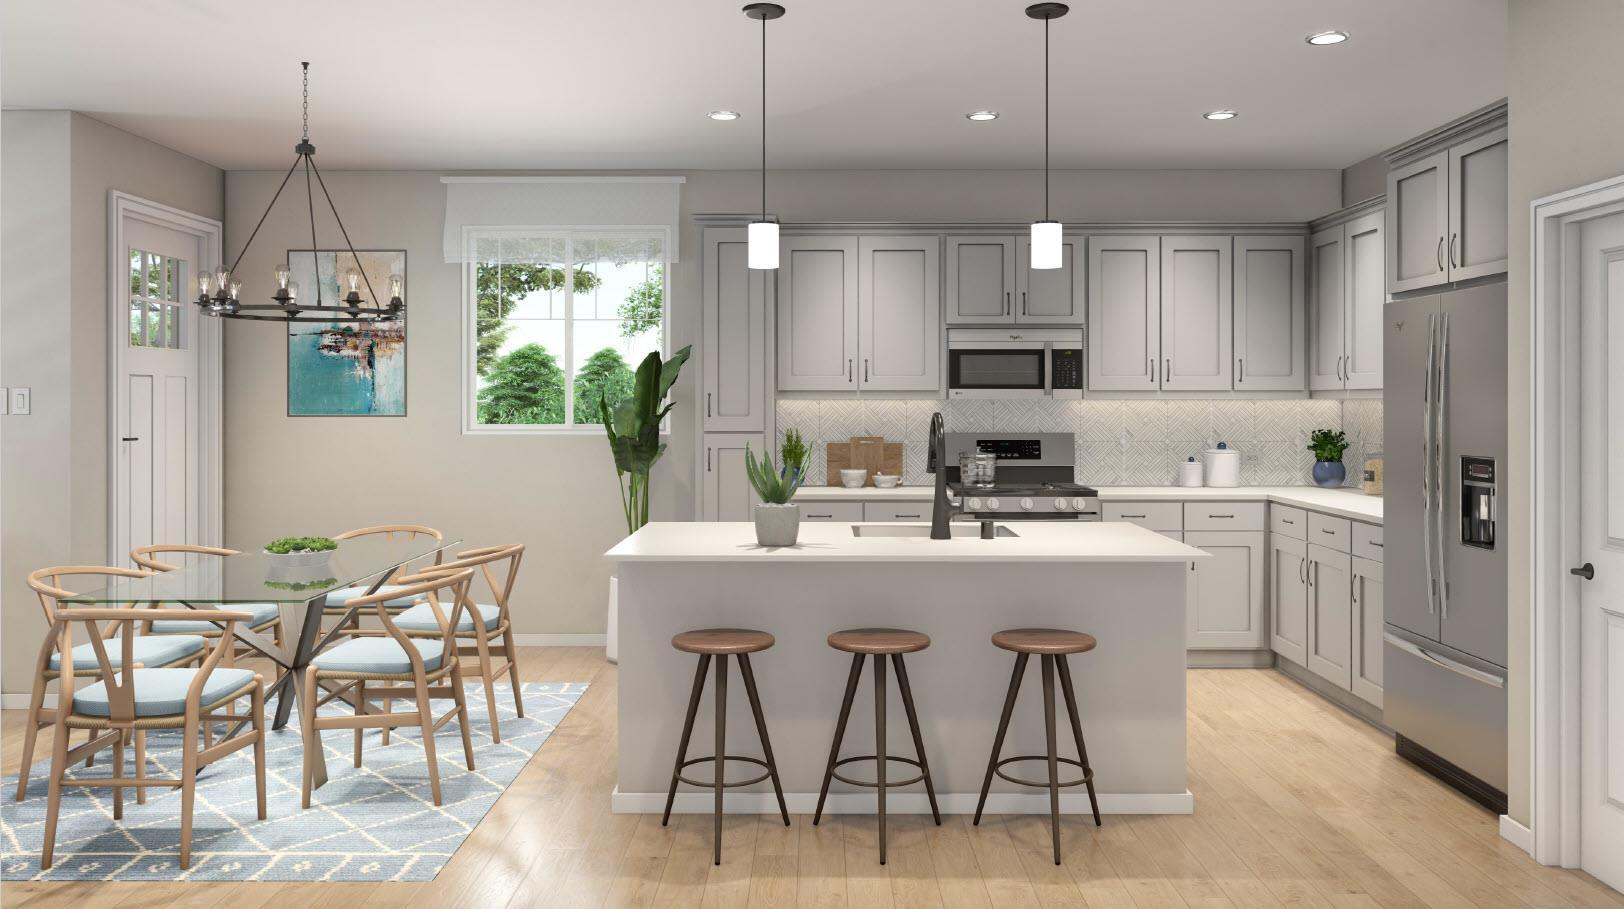 Kitchen featured in the Plan 1 By Ambient Communities in San Luis Obispo, CA